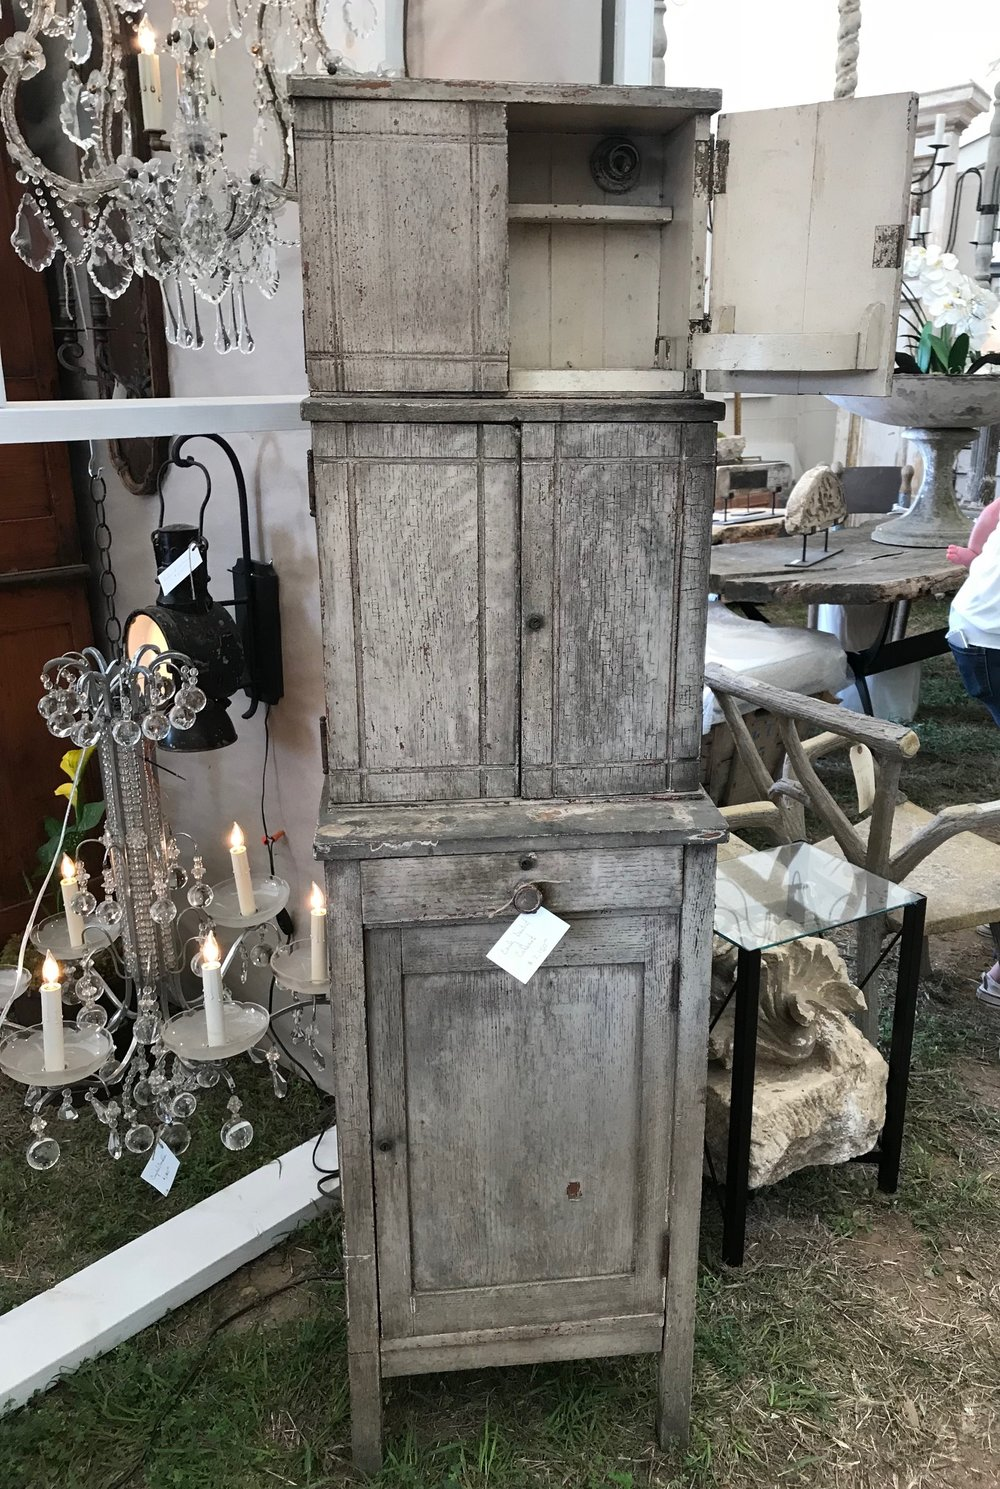 This antique dentist cabinet from Paris, TN will be in Objet Trouvé at The Barn, Bigfork, MT this summer! Imagine what an amazing electrified jewelry cabinet this will be!